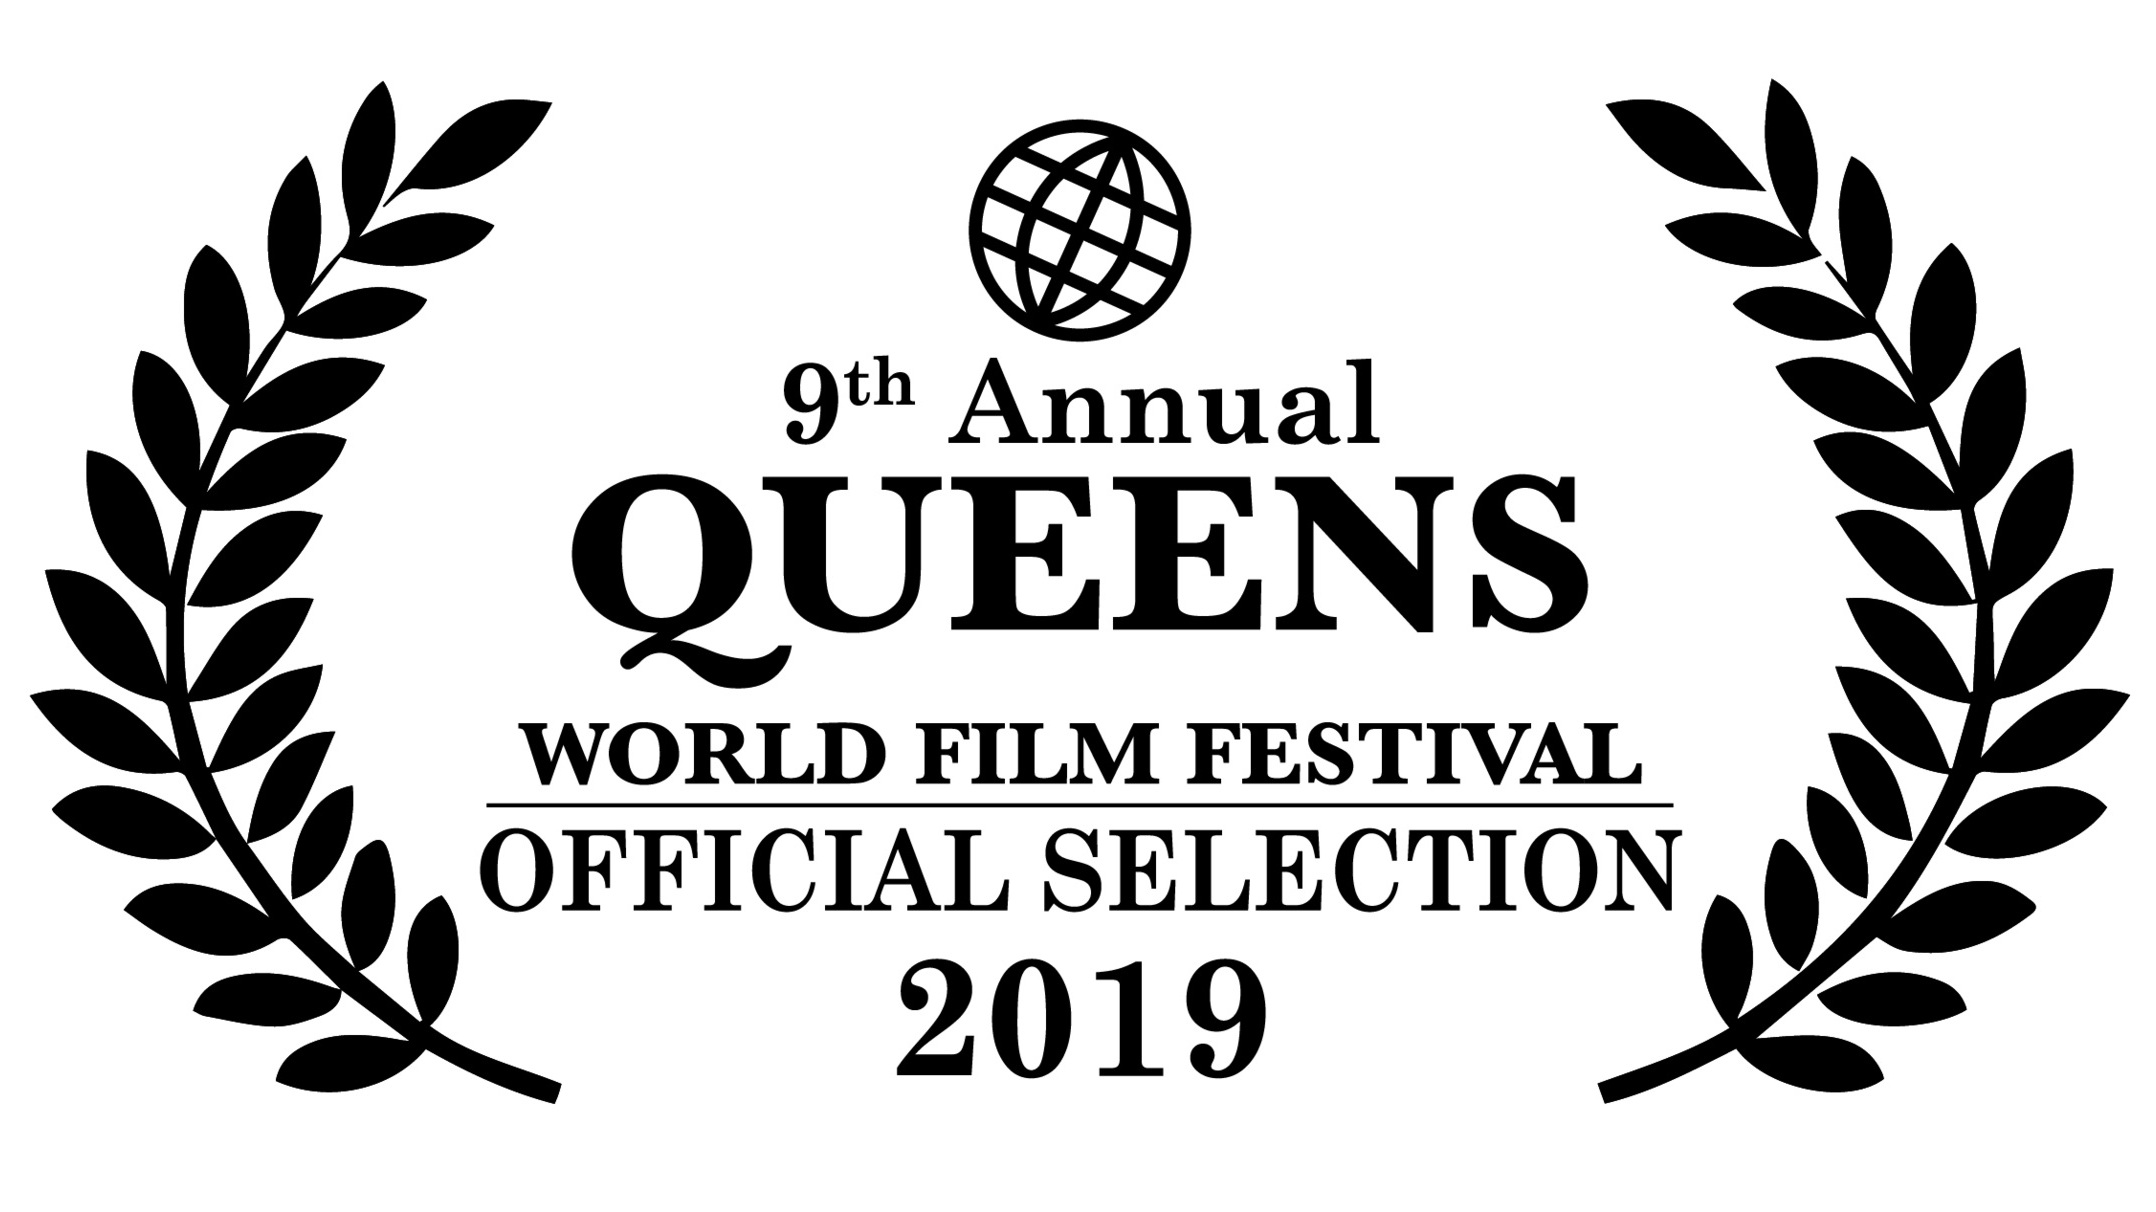 QWFF_Laurels_Official%2BSelection_2019_02-01%2BBLACK%2Bon%2BCLEAR.jpg